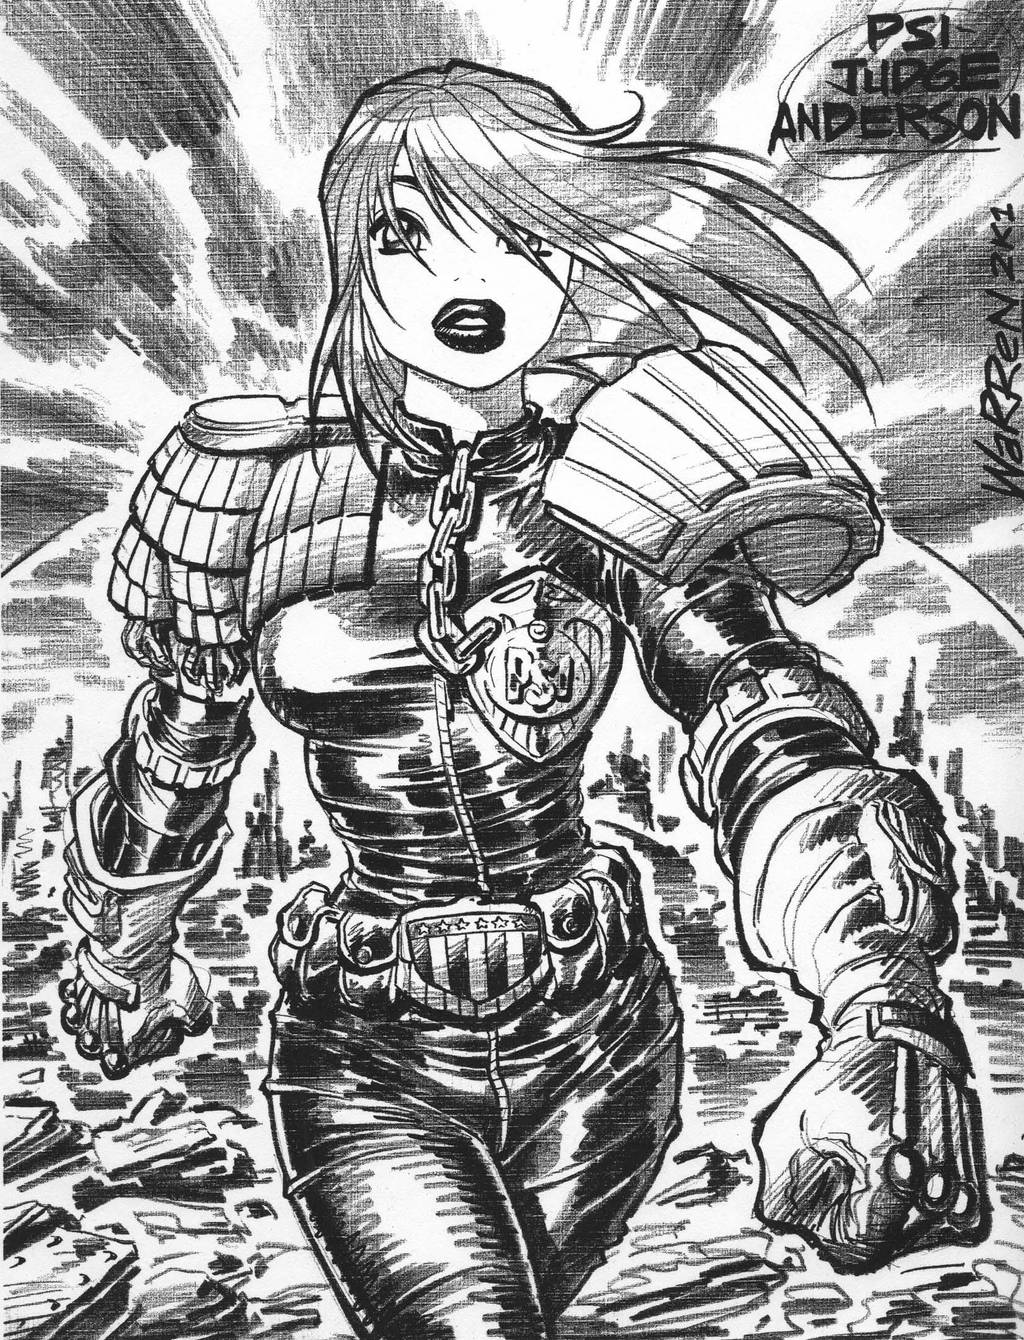 Judge Dredd's PSI-JUDGE ANDERSON, '01 by AdamWarren